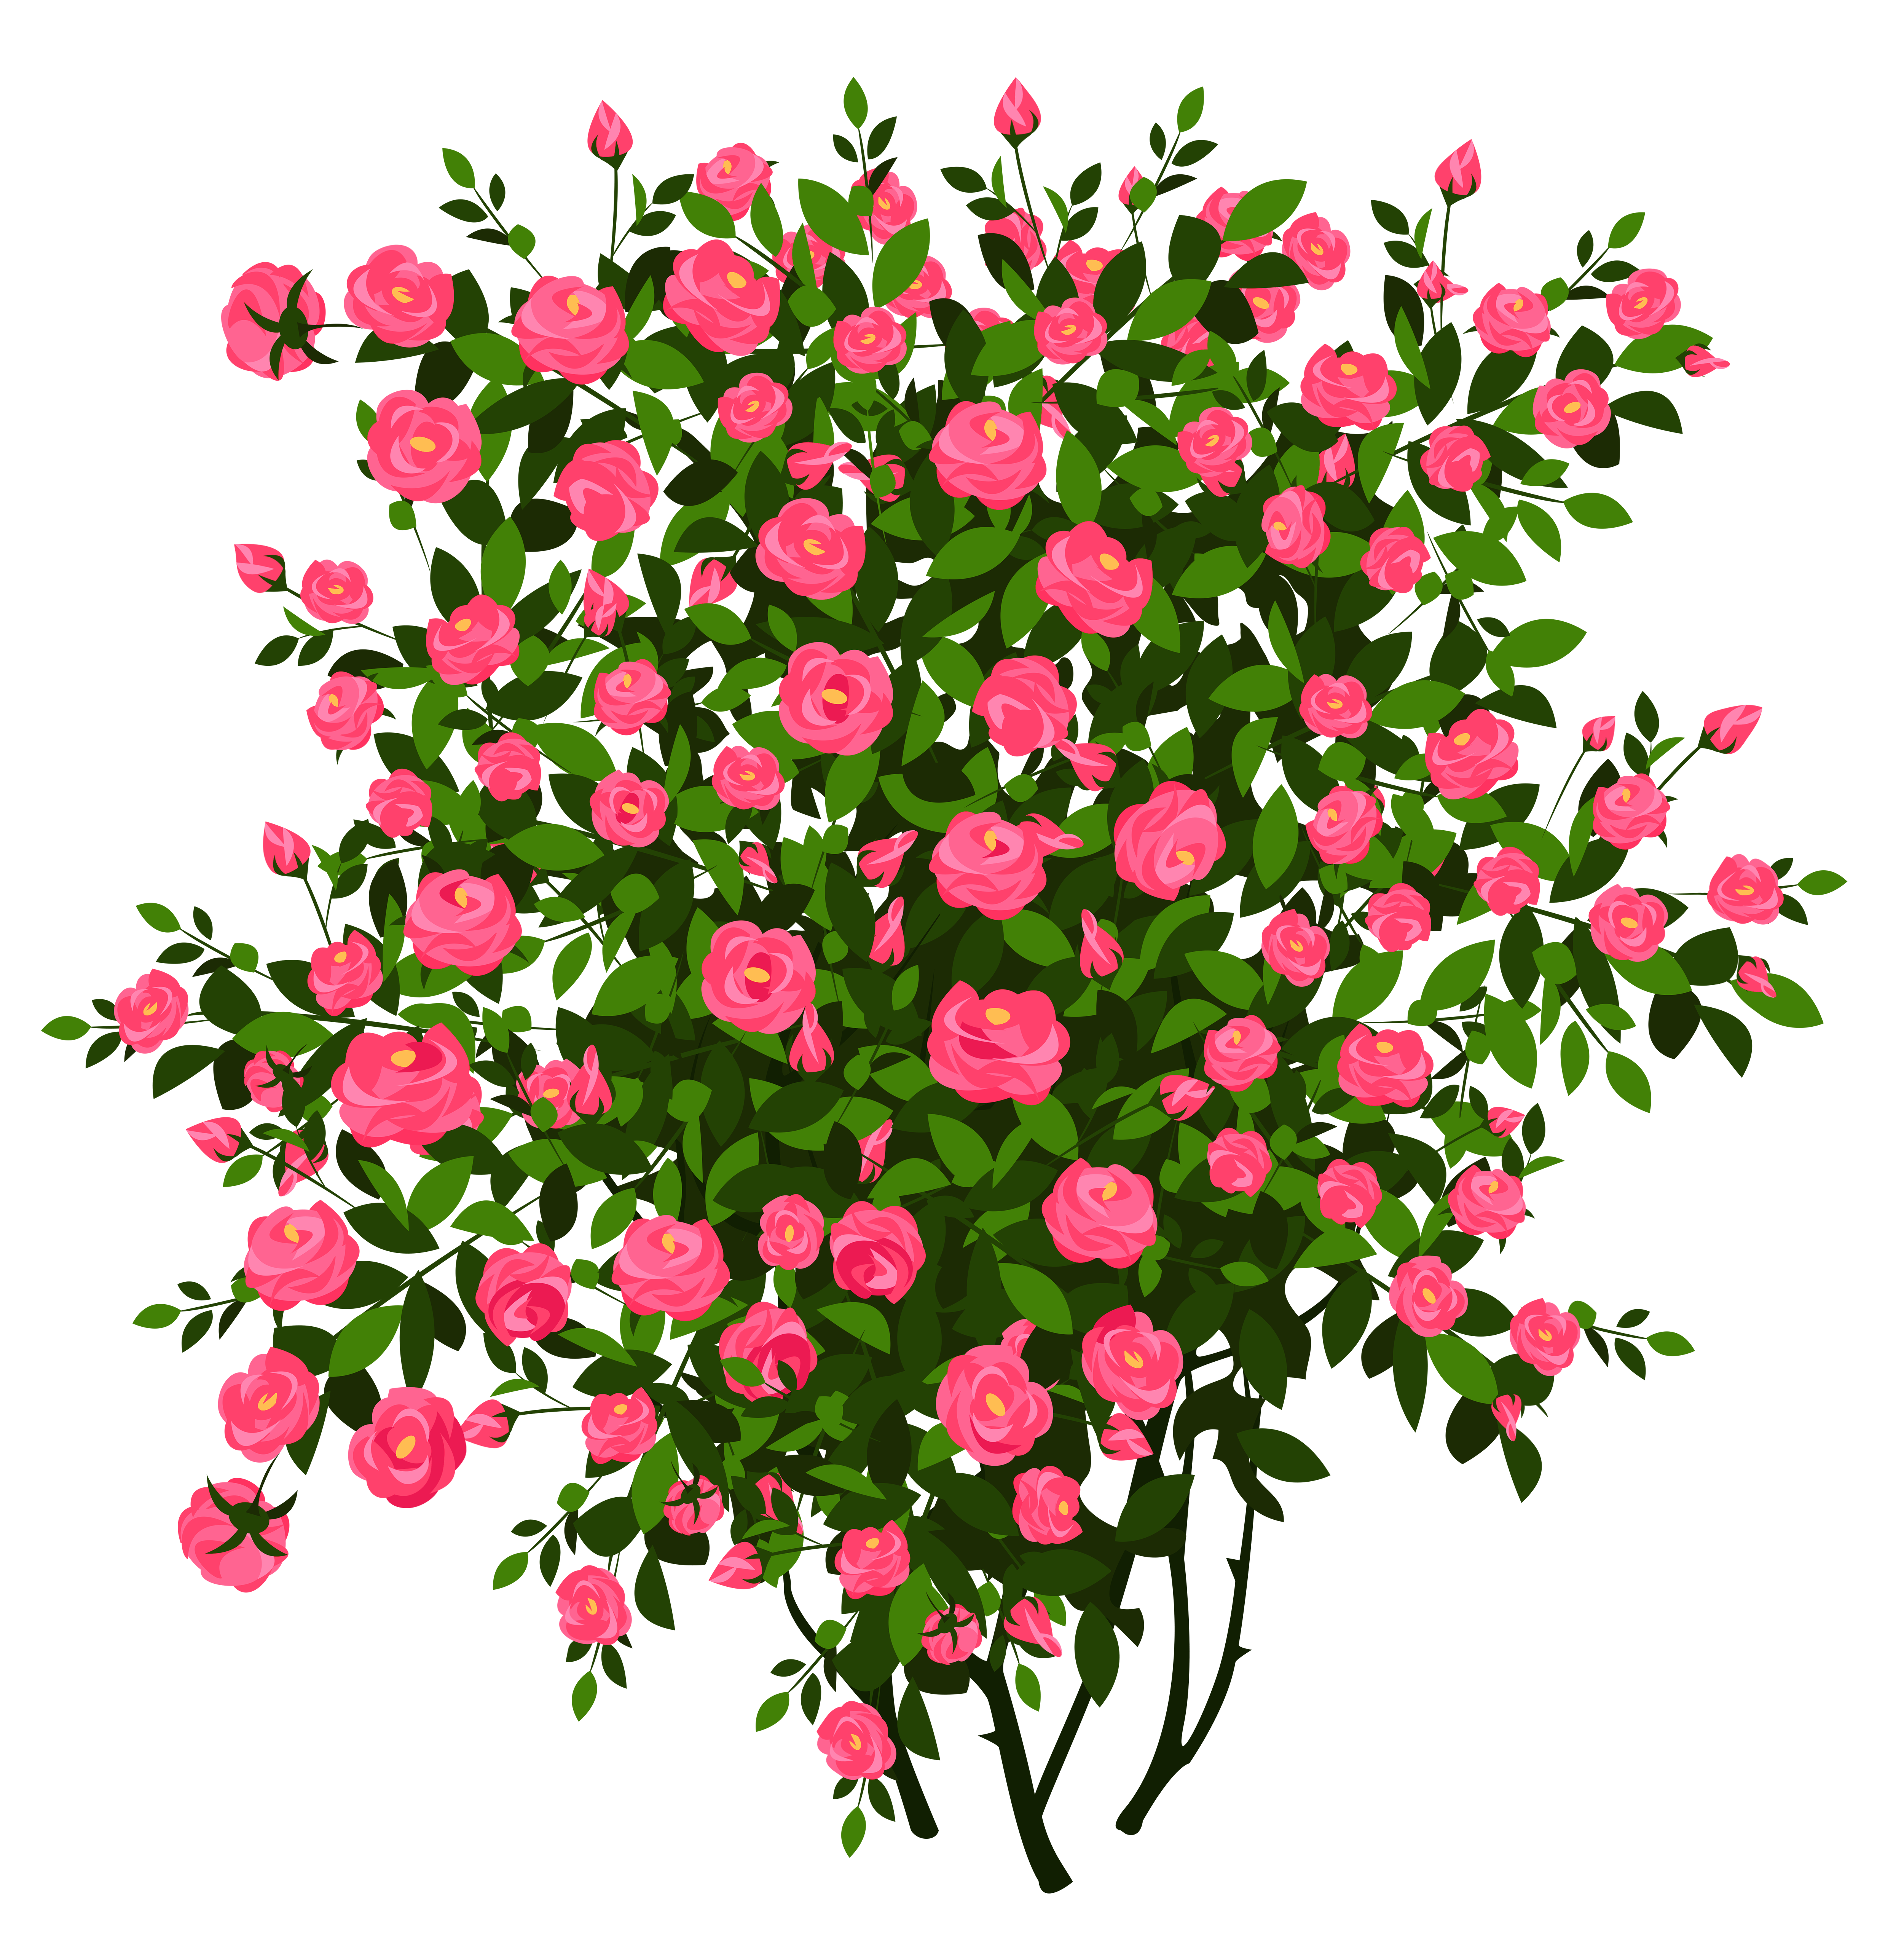 Flower bush clipart clip art black and white library Pink Rose Bush PNG Clipart Picture   Gallery Yopriceville - High ... clip art black and white library